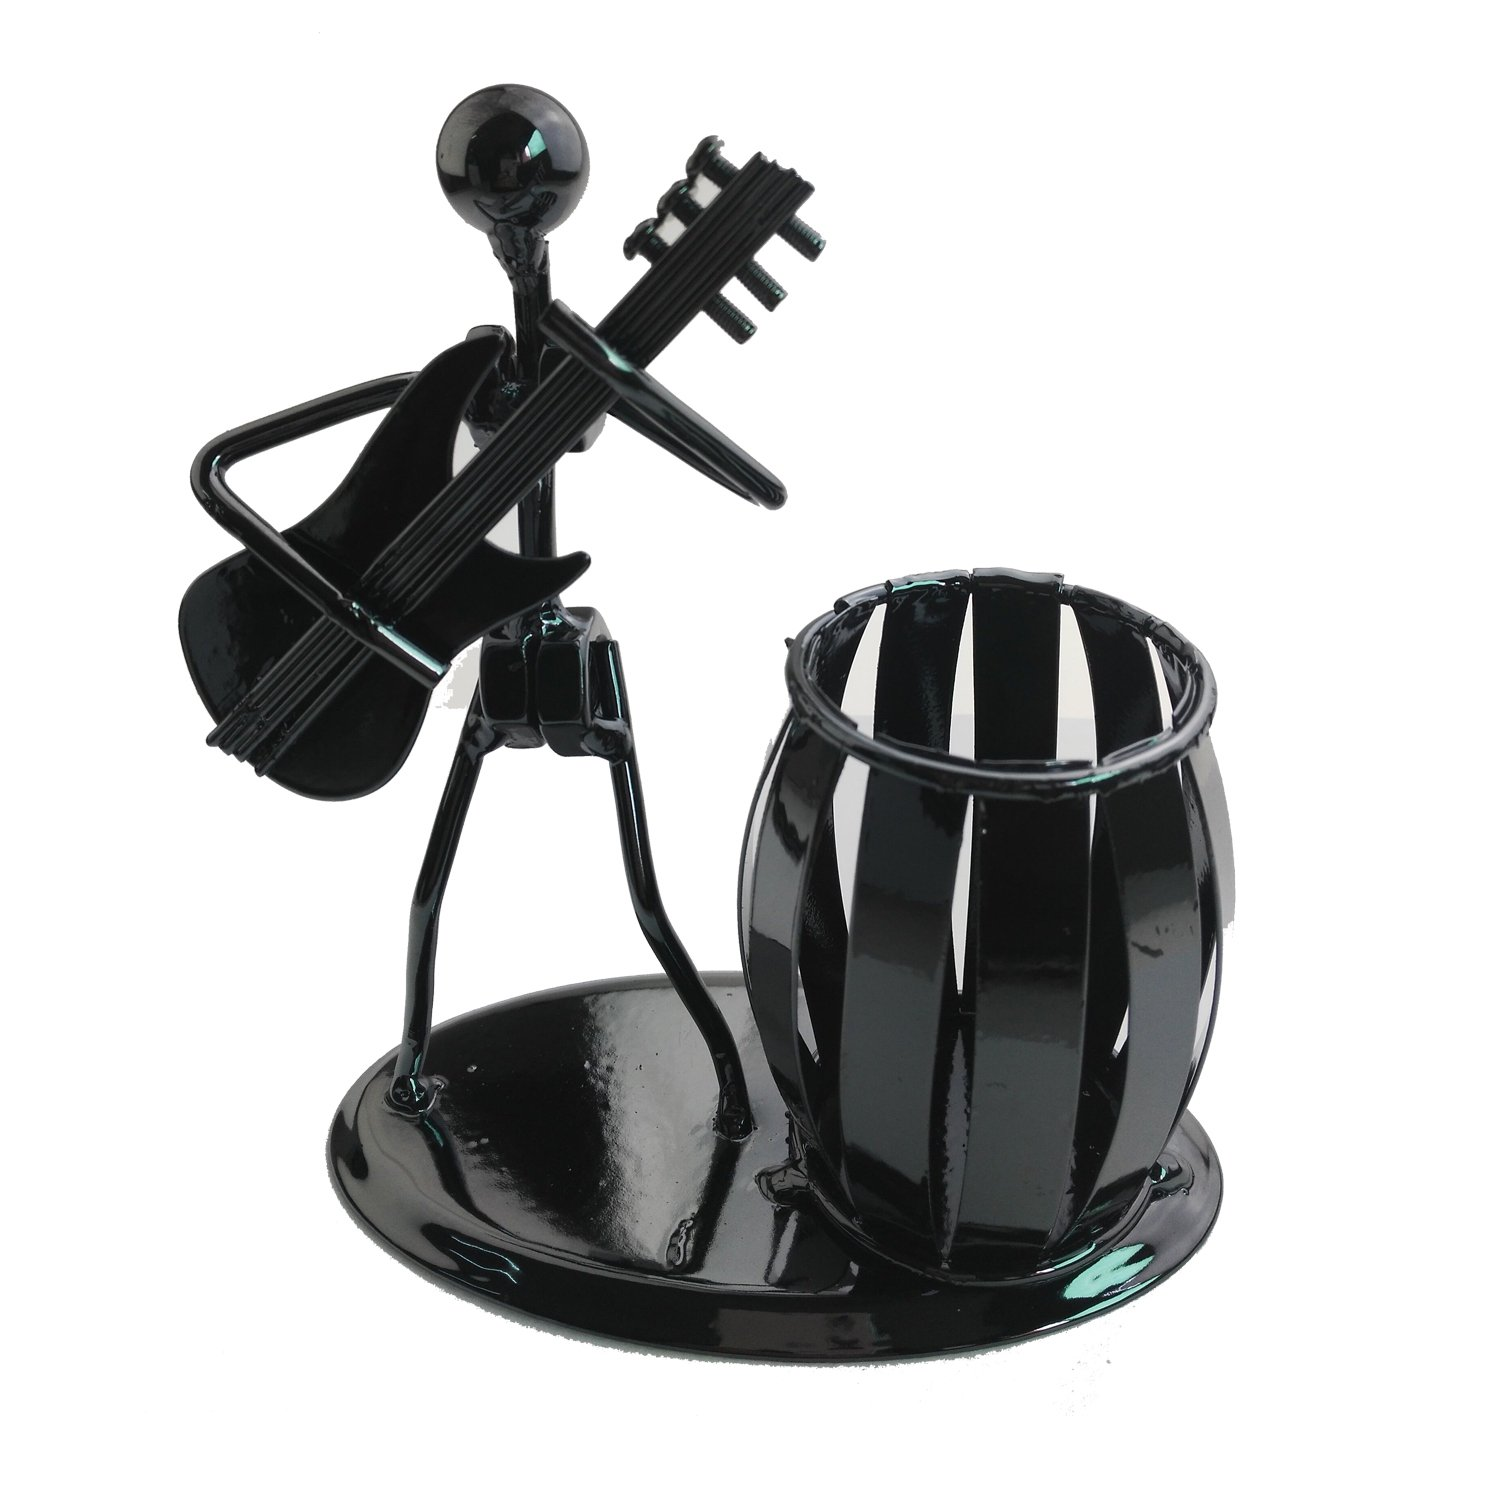 Recycled Metal Art Hand-made Pen Holder with a Guitarist Figure Playing Music - Decorative Desk Organizer Office Space Supply Multipurpose Pen Pencil Holder Gracallet AX-AY-ABHI-106766